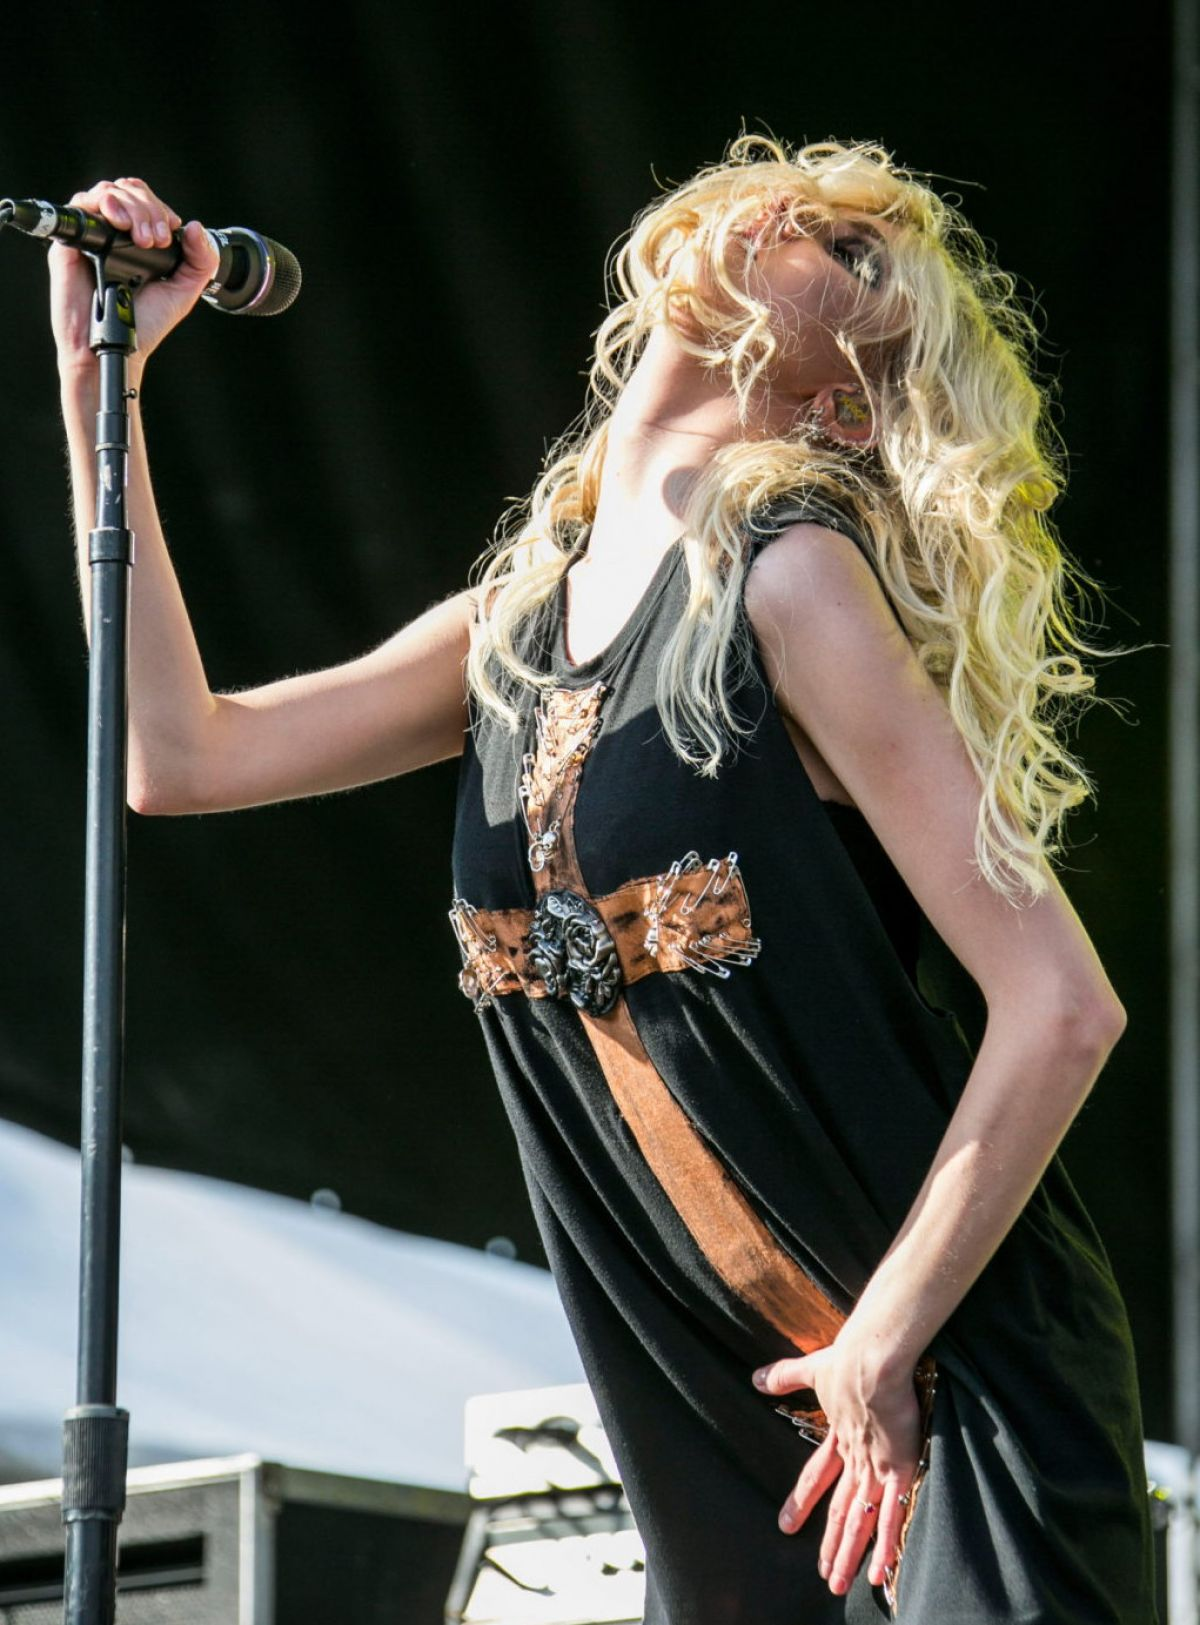 Taylor Momsen Performing at 'Rocklahoma' in Pryor - May 2014 |Taylor Momsen 2014